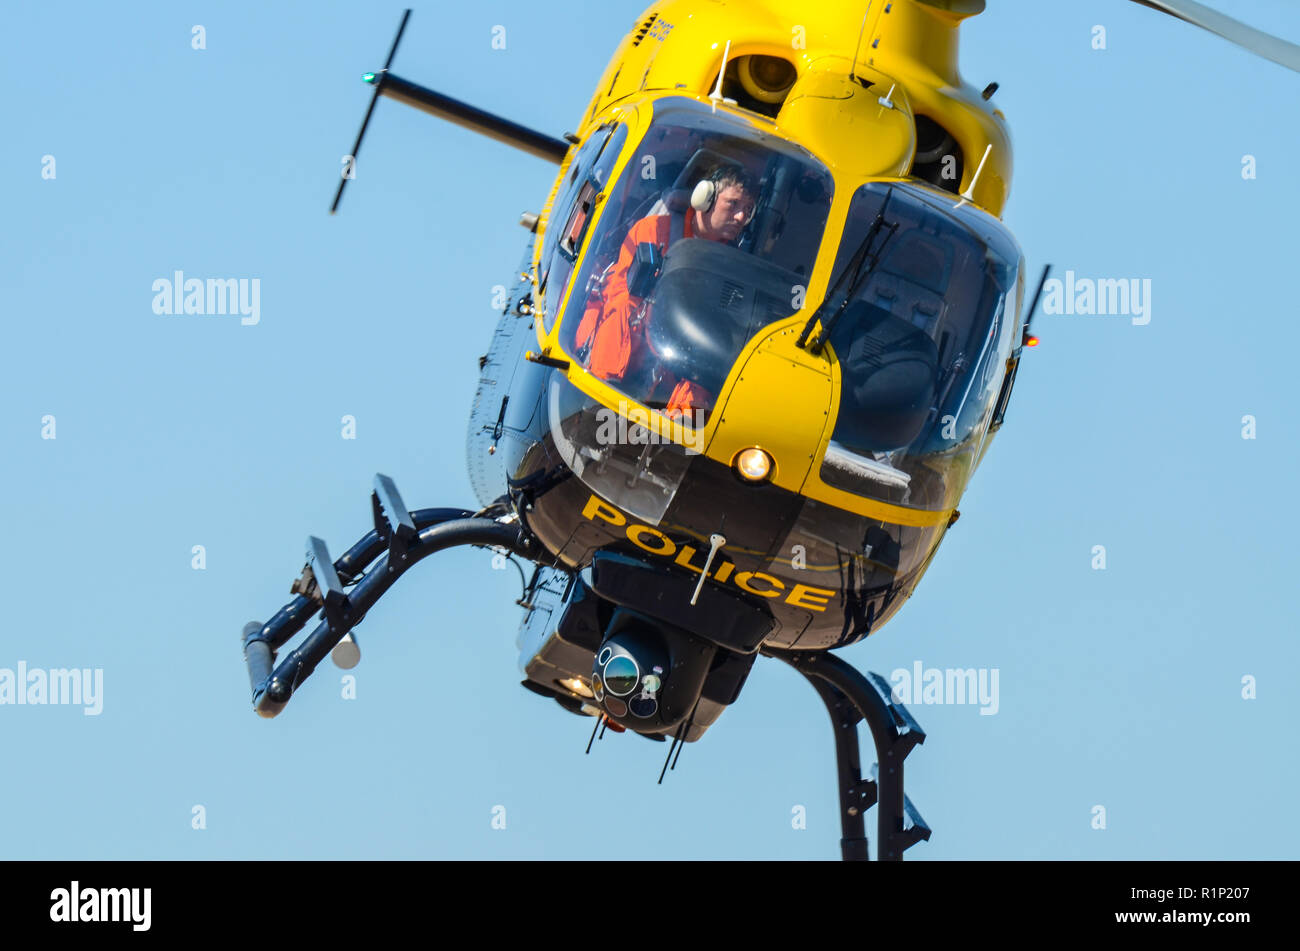 police-helicopter-with-pilot-eurocopter-ec135-helicopter-law-enforcement-aviation-flying-with-space-for-copy-R1P207.jpg